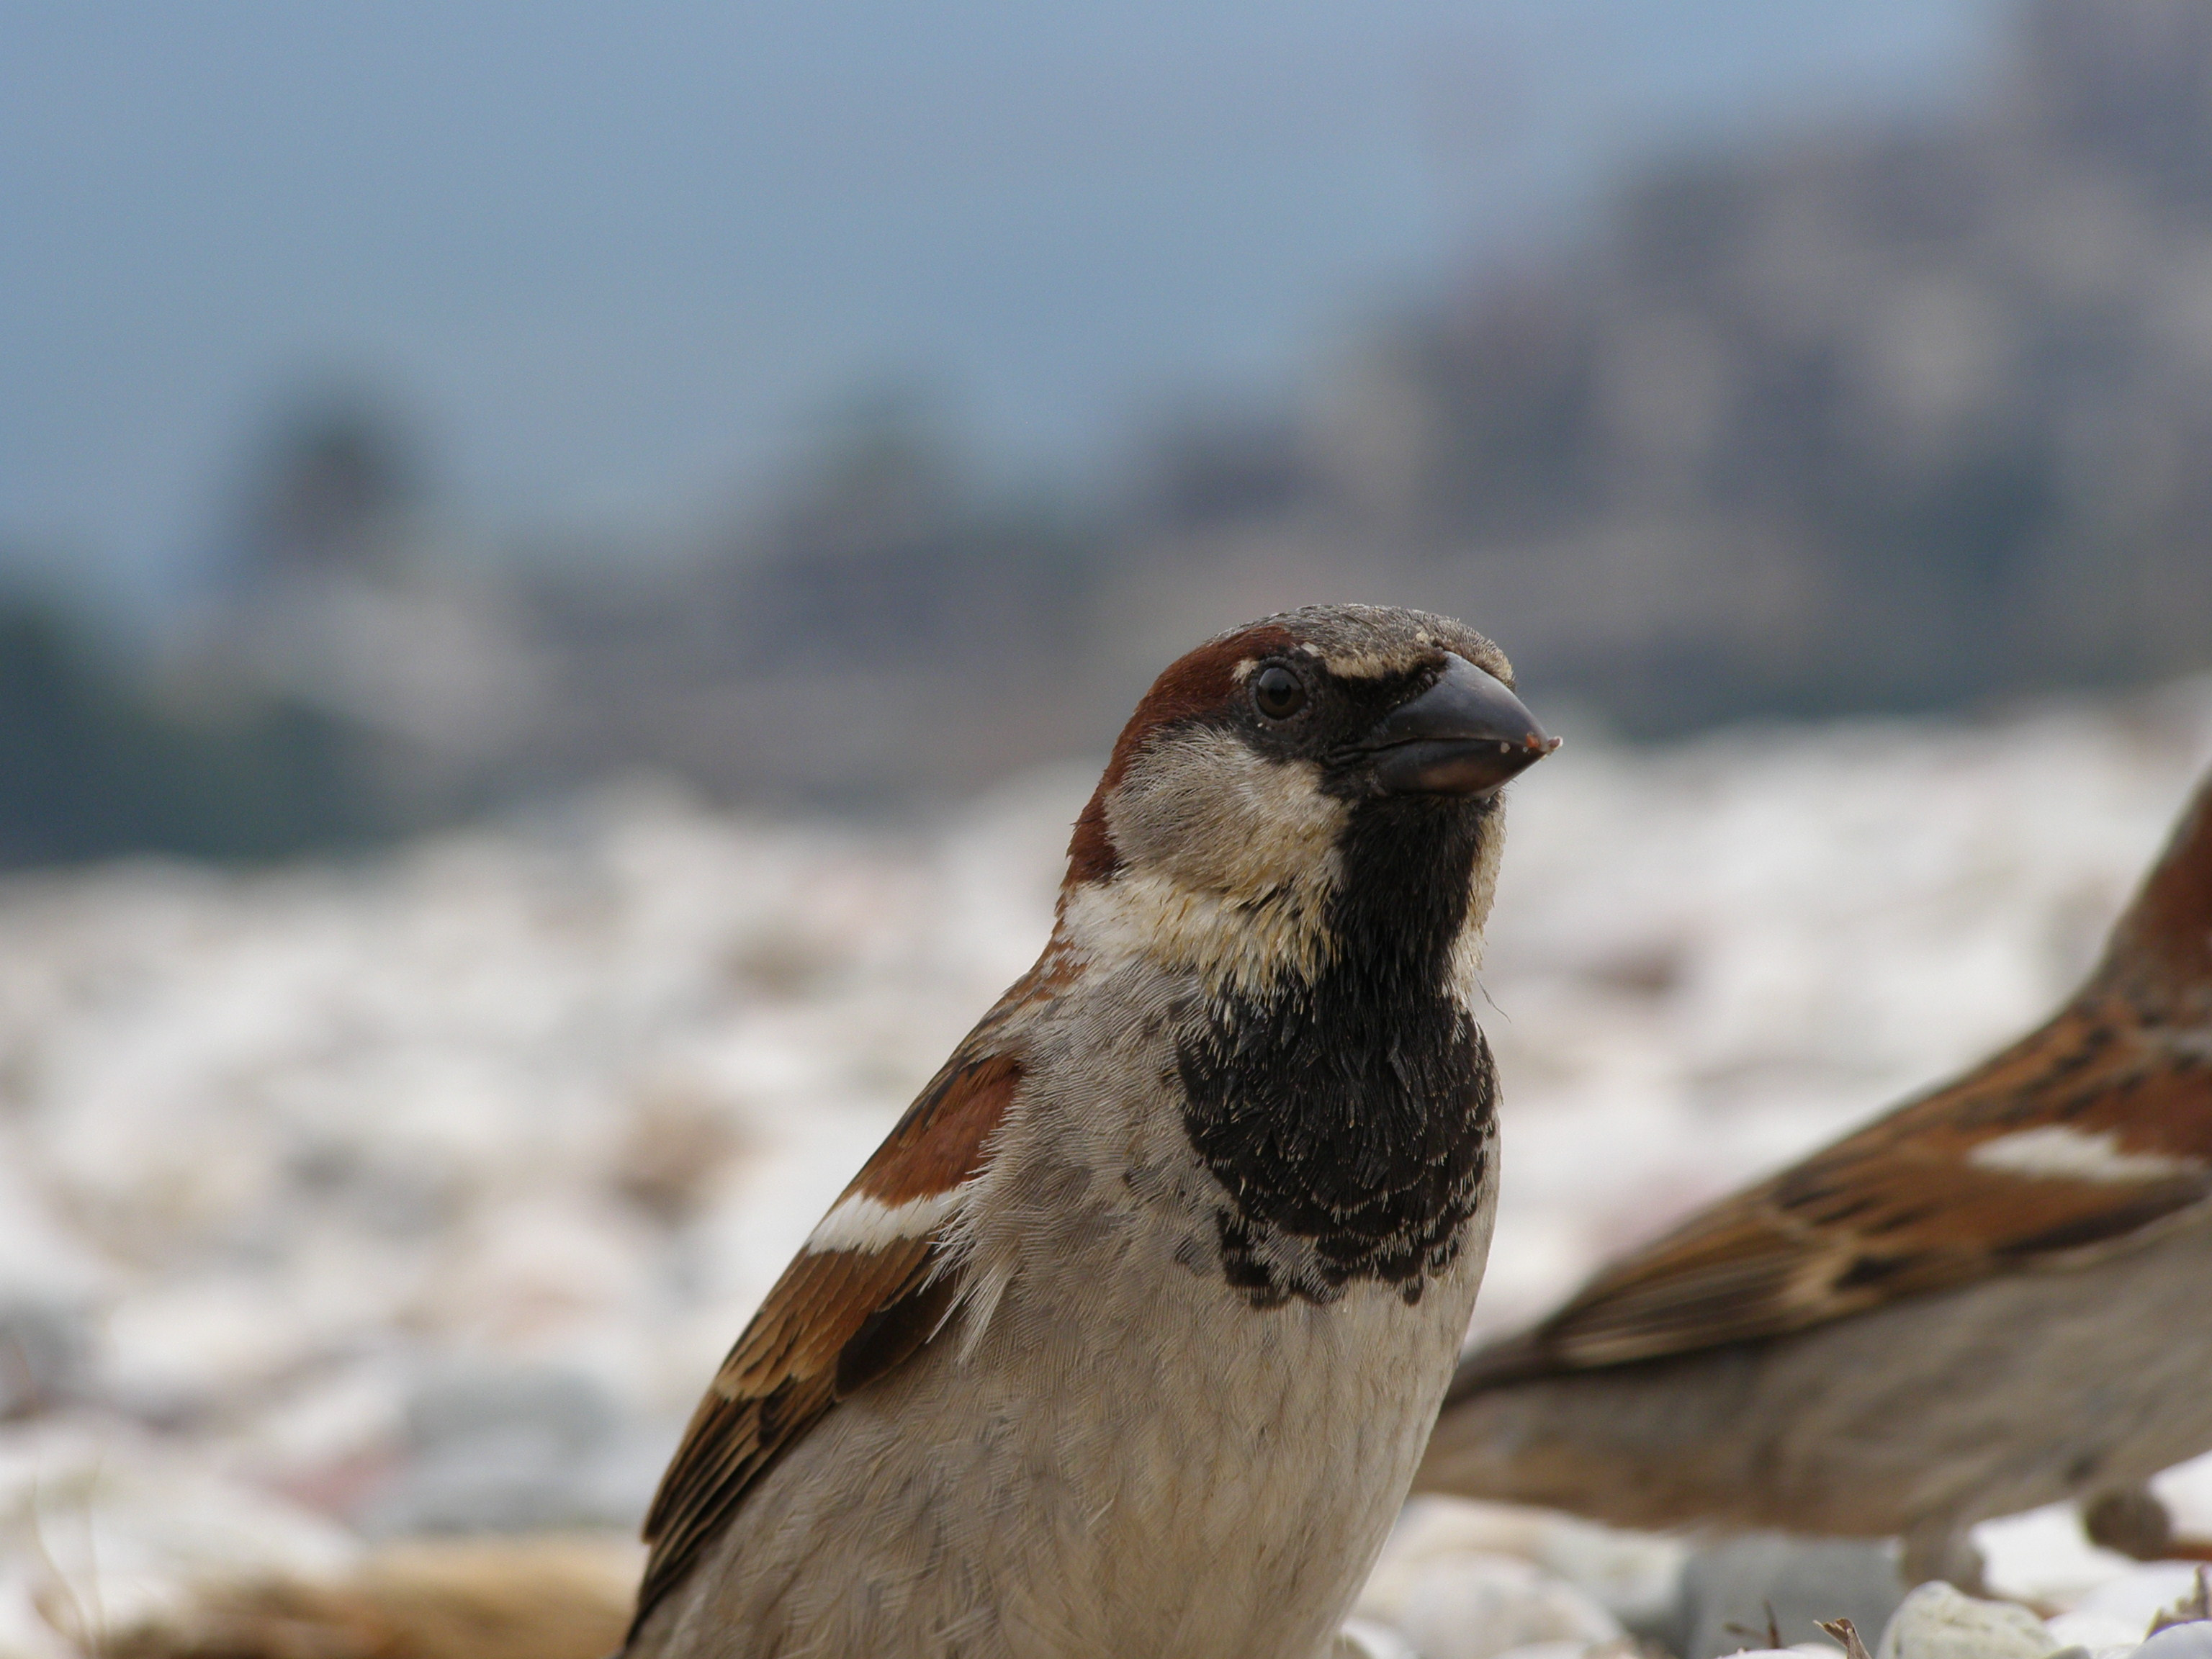 A bird in Budva town, Montenegro, Europe (2009), picture 42.